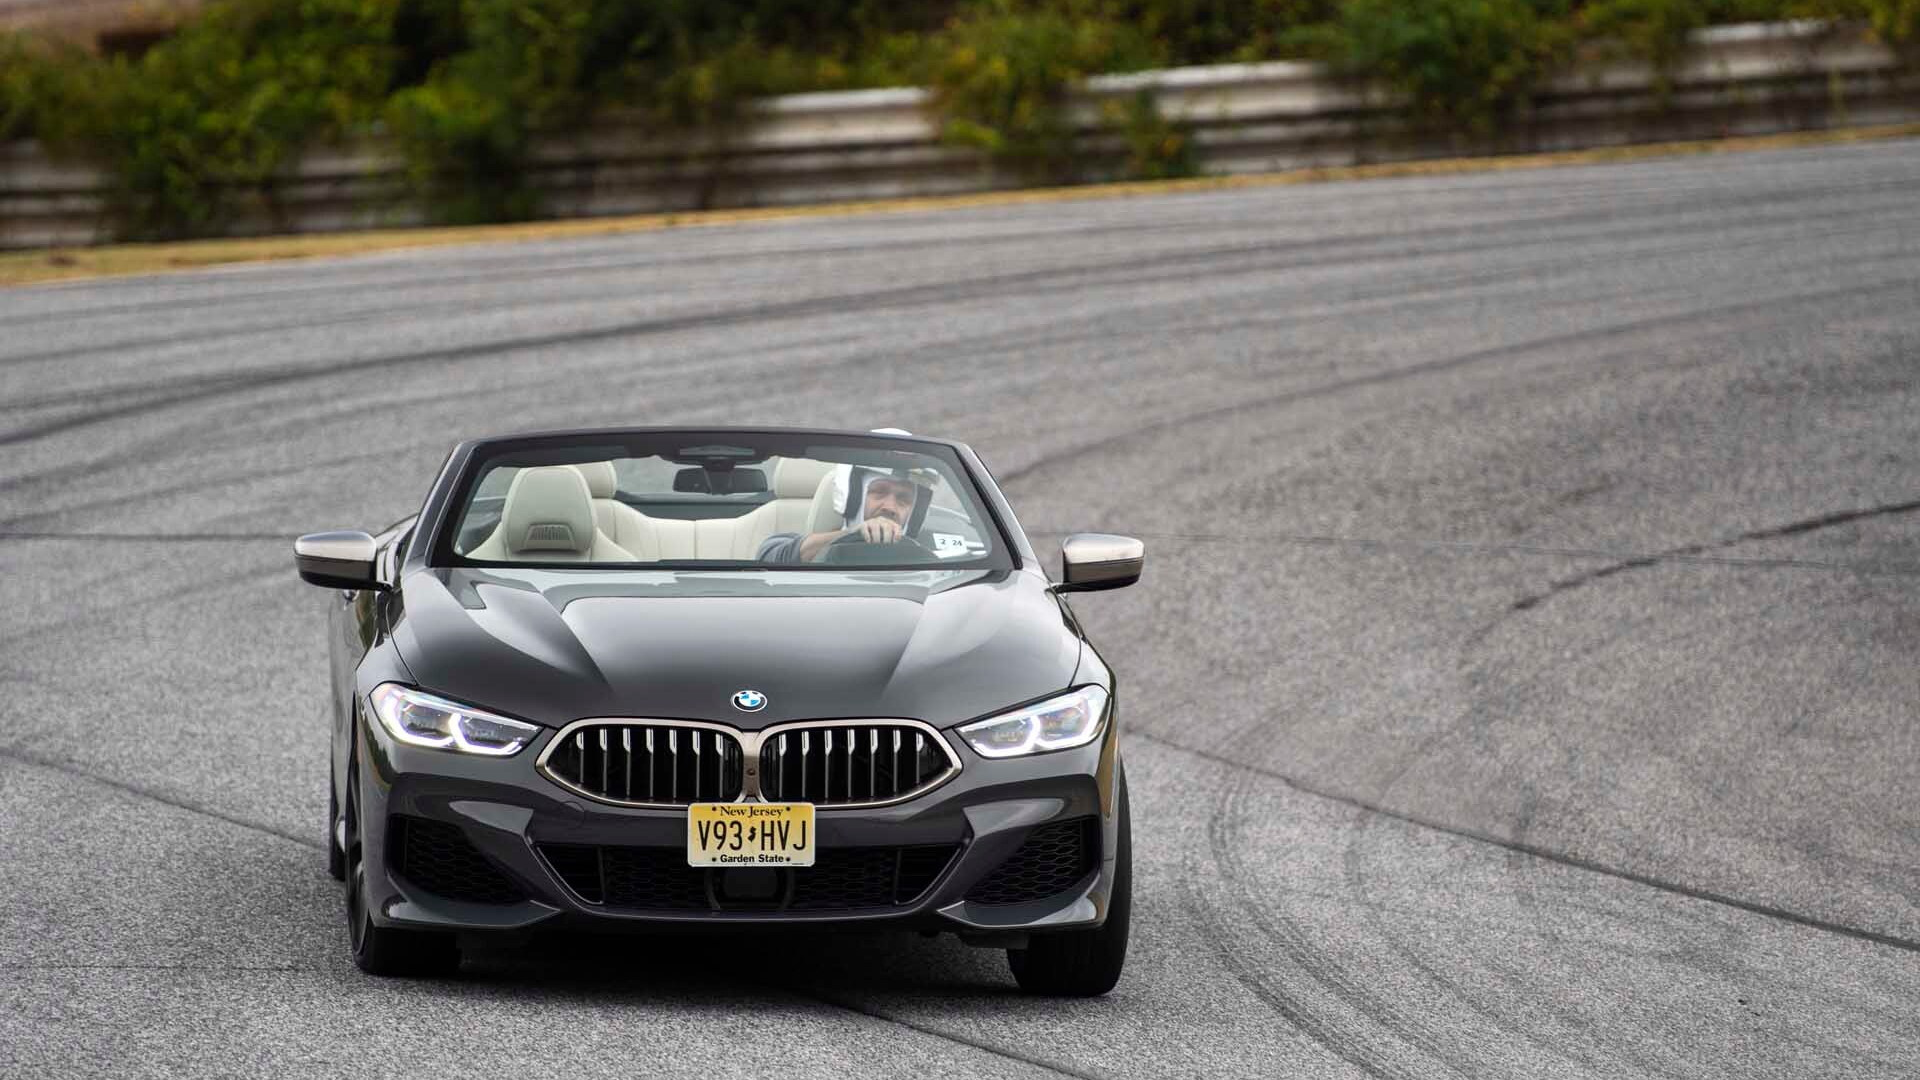 2019 BMW 8-Series Convertible - Best Car To Buy 2020